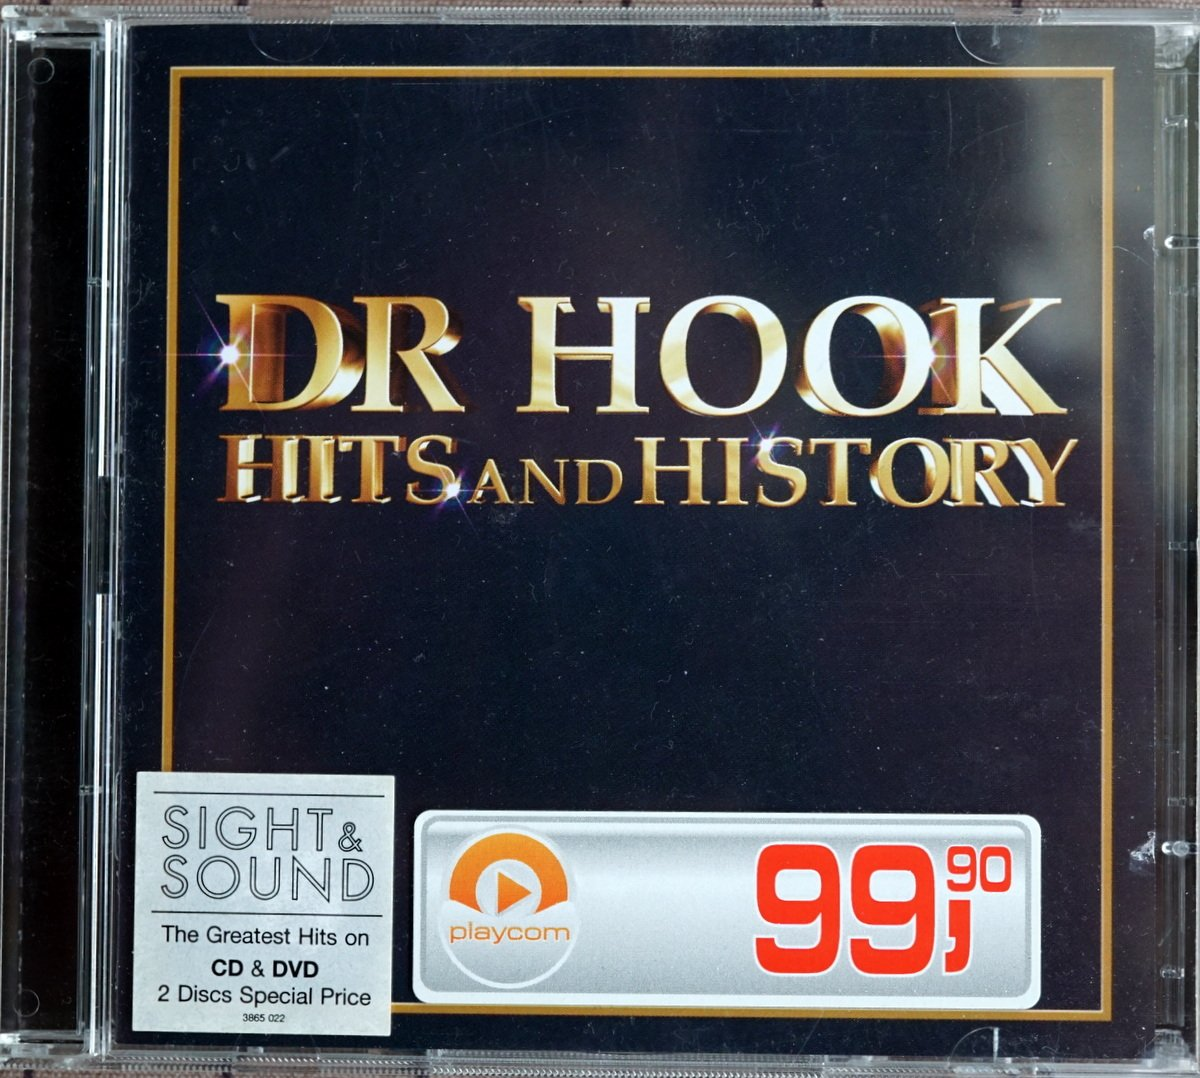 CD DVD - EMI - Dr Hook Hits and History - EU - 2007